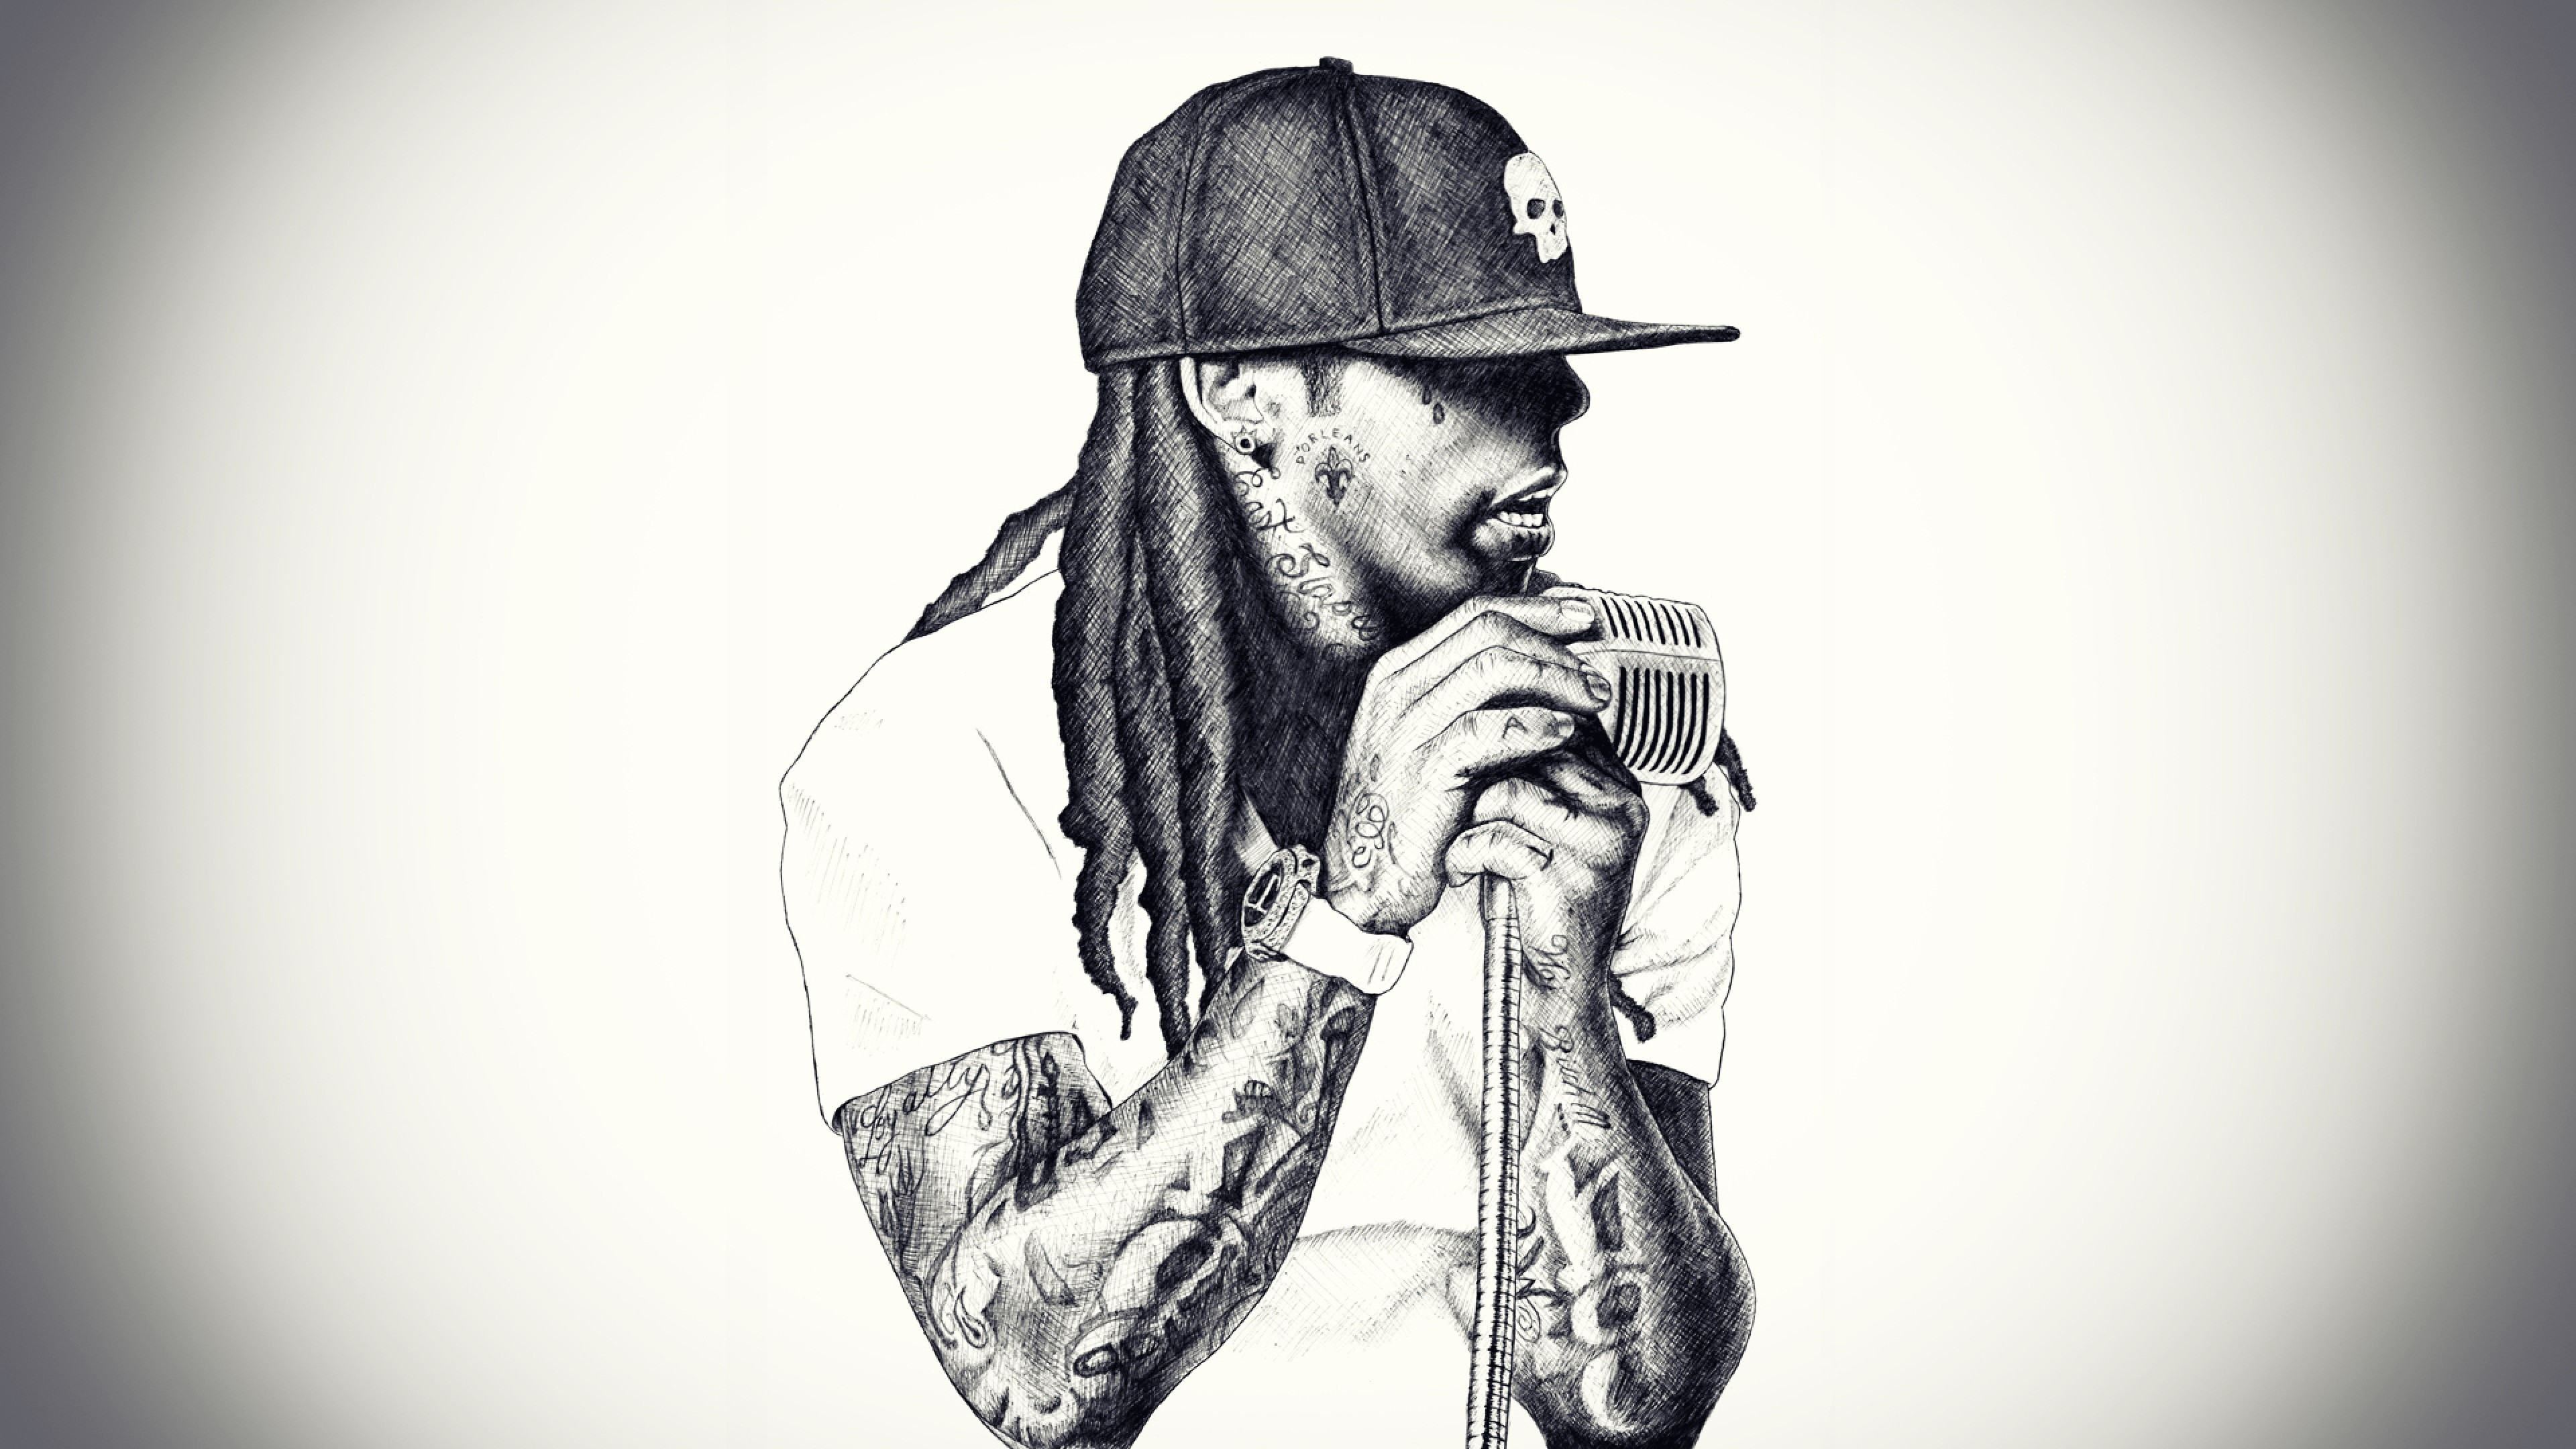 3840x2160 Preview Wallpaper Lil Wayne Rap Singer Microphone Baseball Cap Dreadlocks